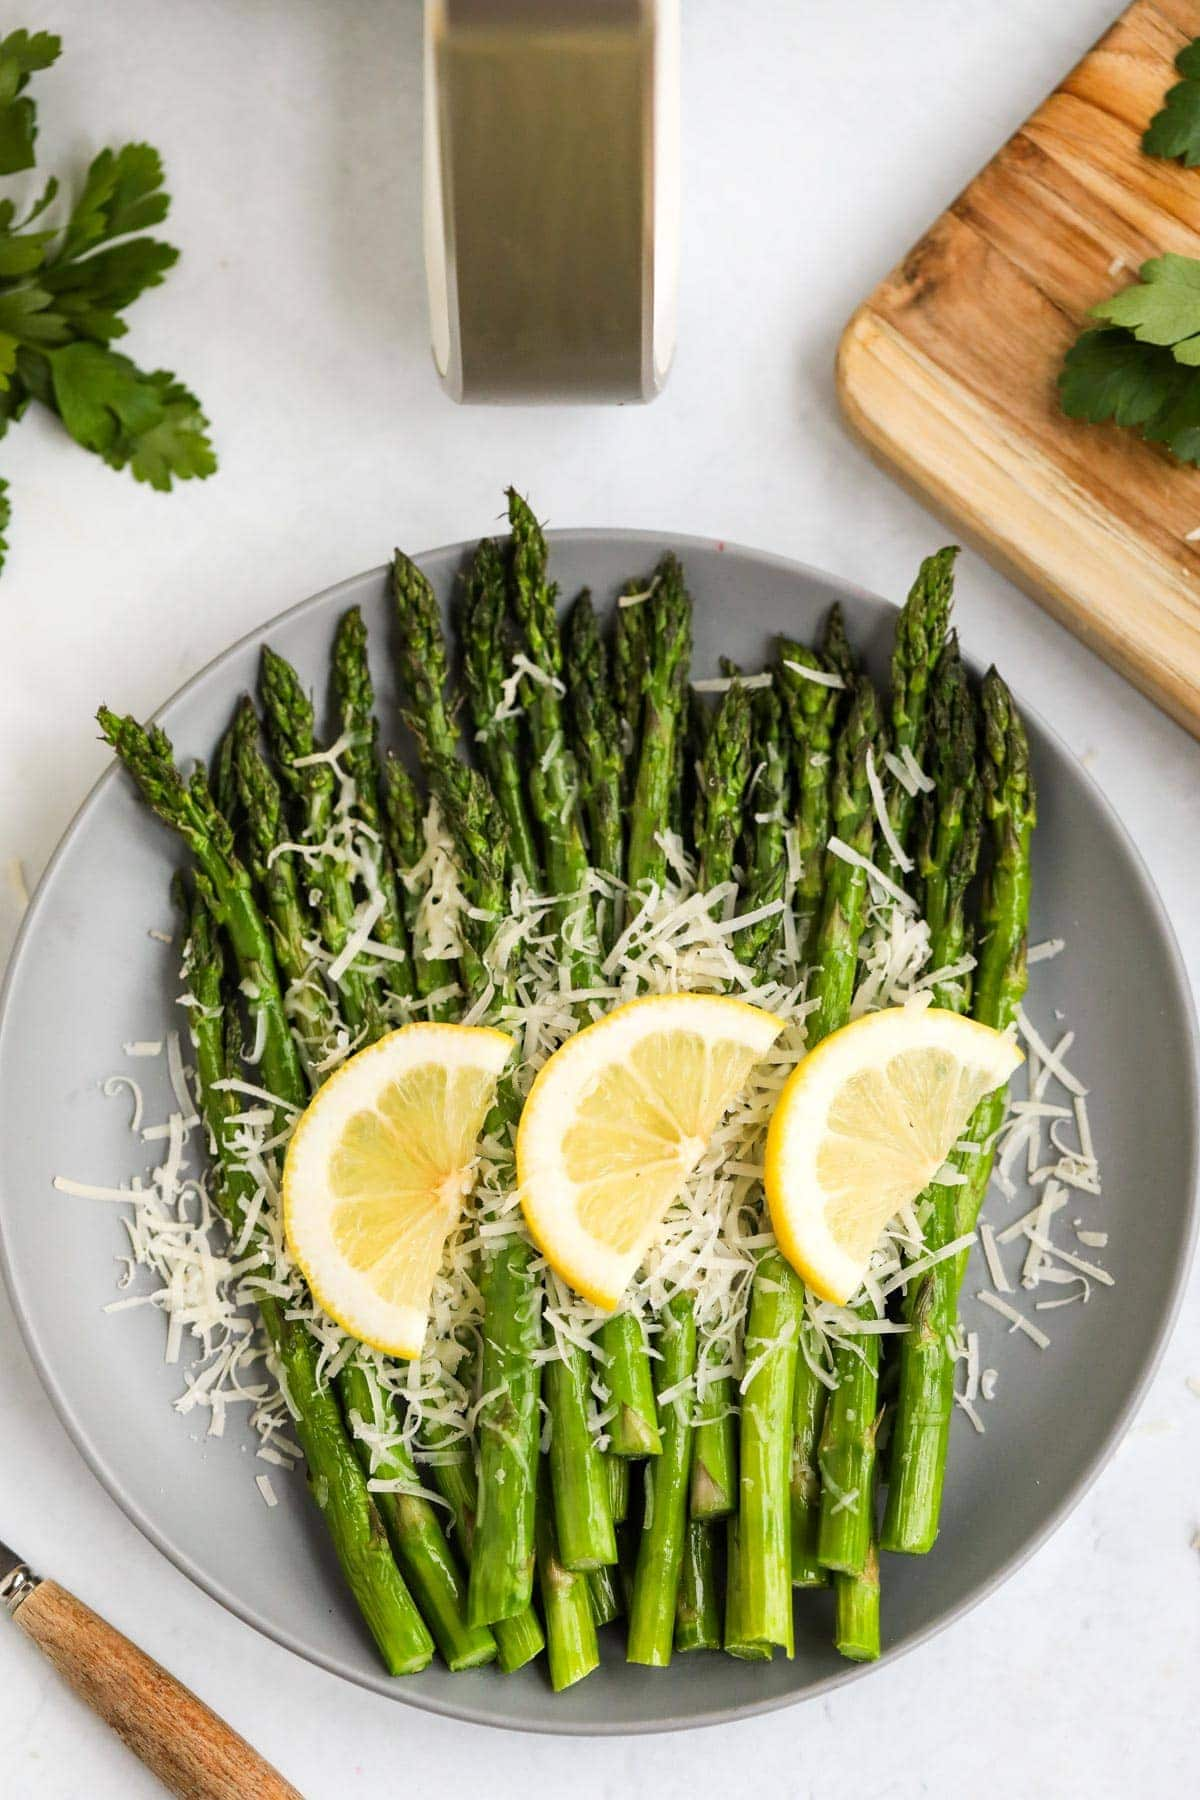 white plate, asparagus with lemon slices and parmesan, wood cutting board, air fryer handle